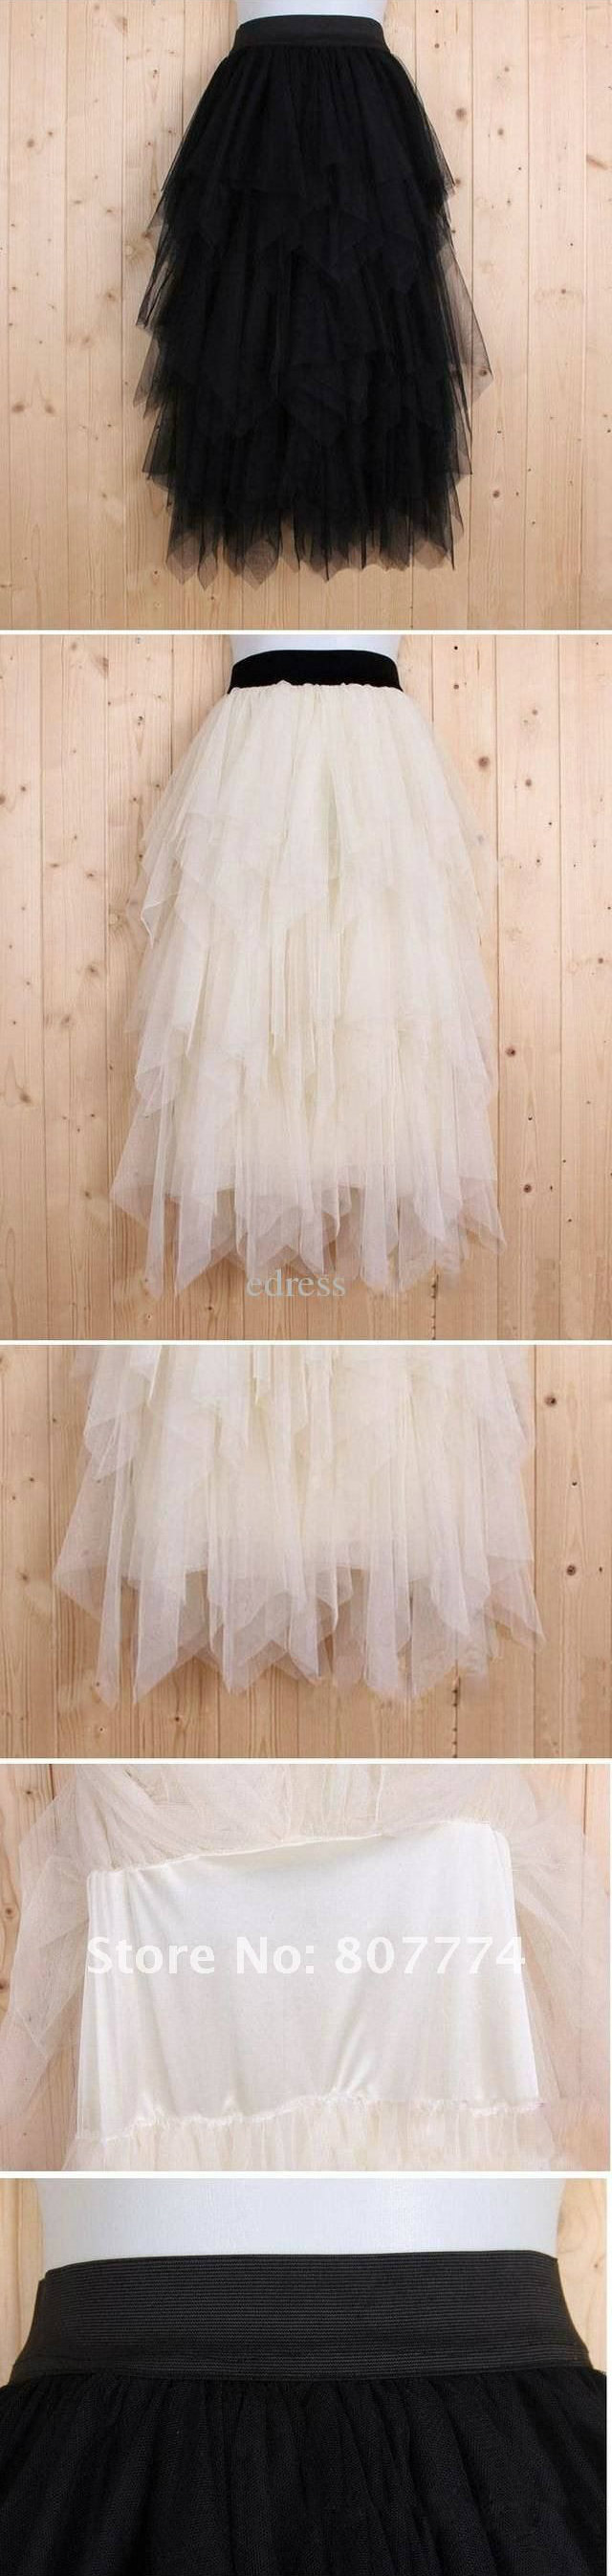 Women tulle skirt long ball skirt black/apricot skirt promotion